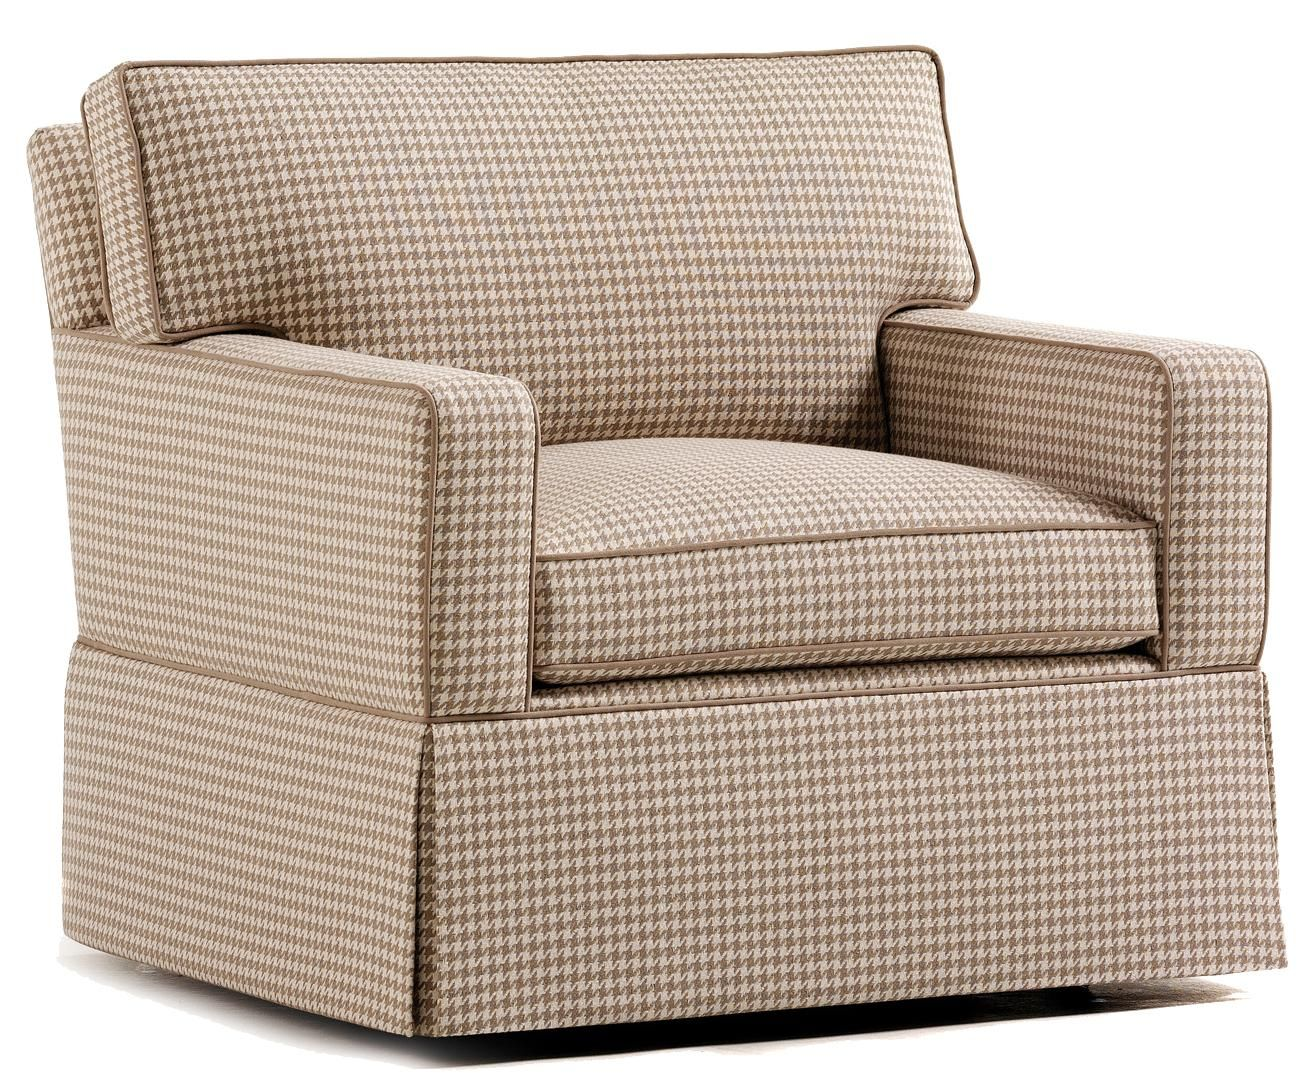 Fine Upholstered Accents Nate Swivel Chair    by Jessica Charles